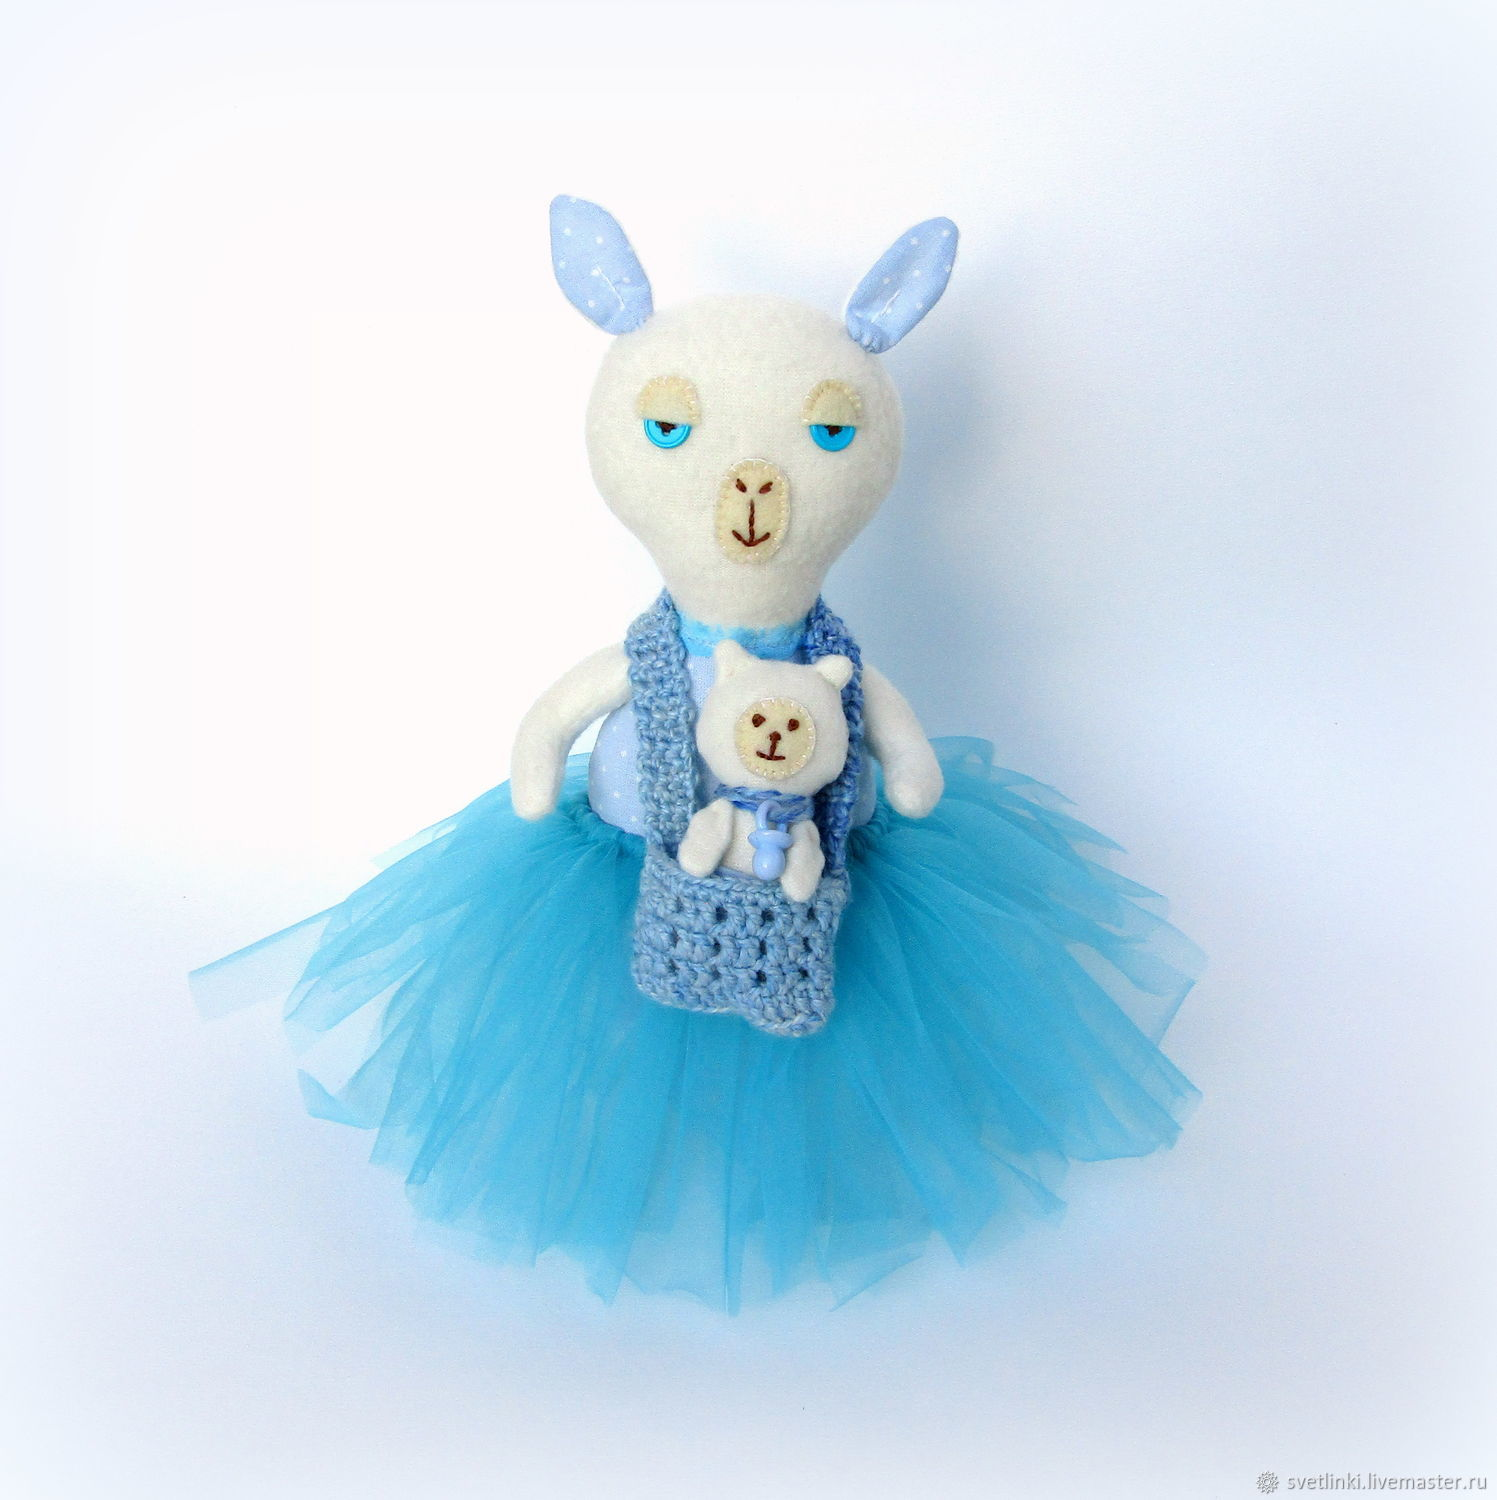 Soft toy Mama llama and baby llama baby. Gift for mom, pregnant, girls, girls. interior doll. Blue color. Svetlenky dolls and handmade toys. Fair Masters.